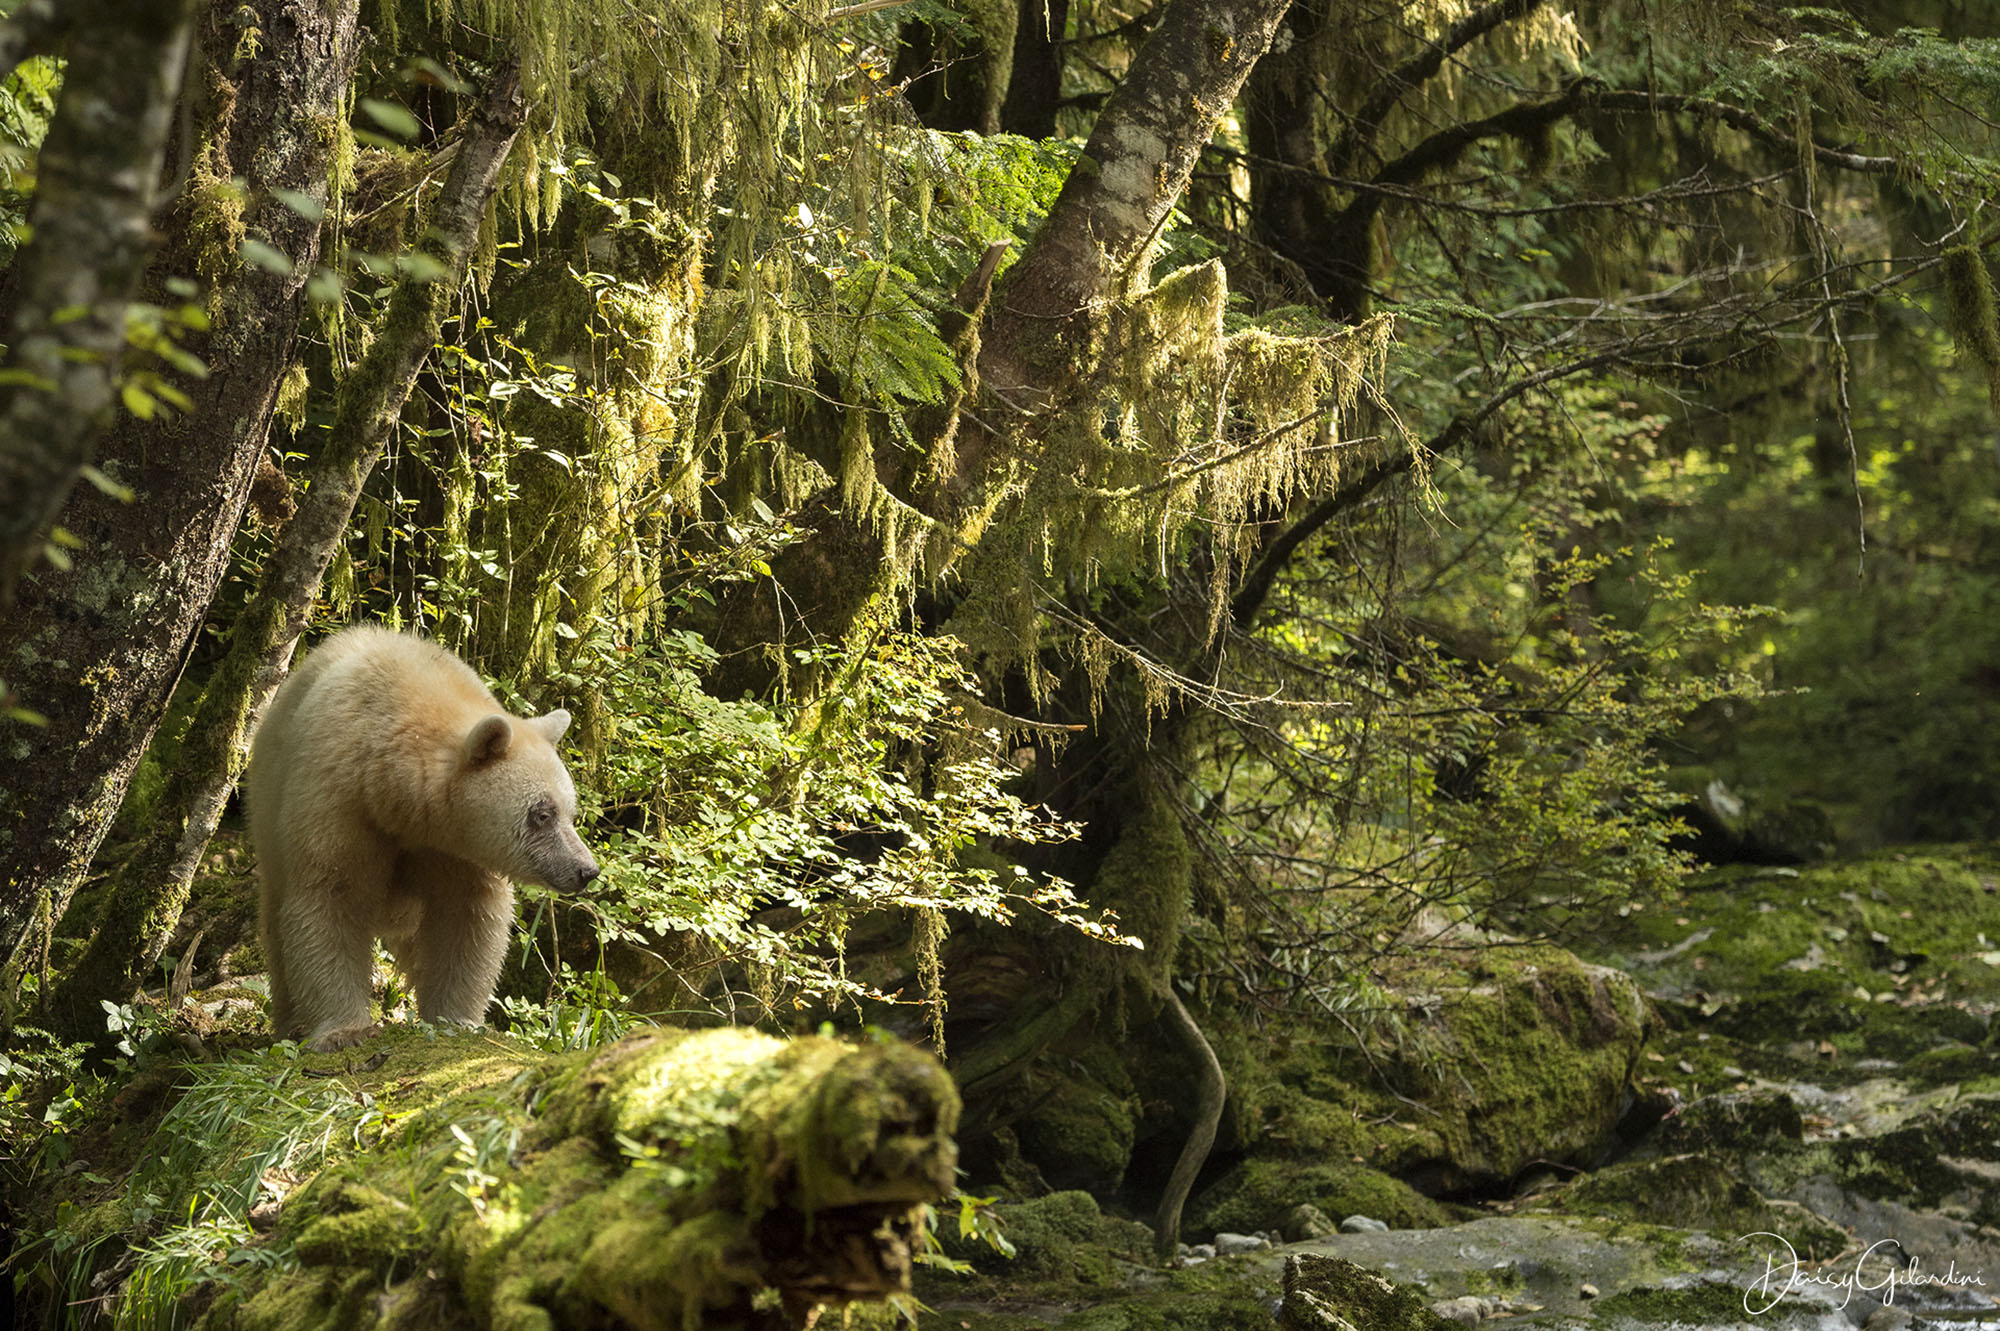 Spirit bear in forest (Daisy Gilardini)